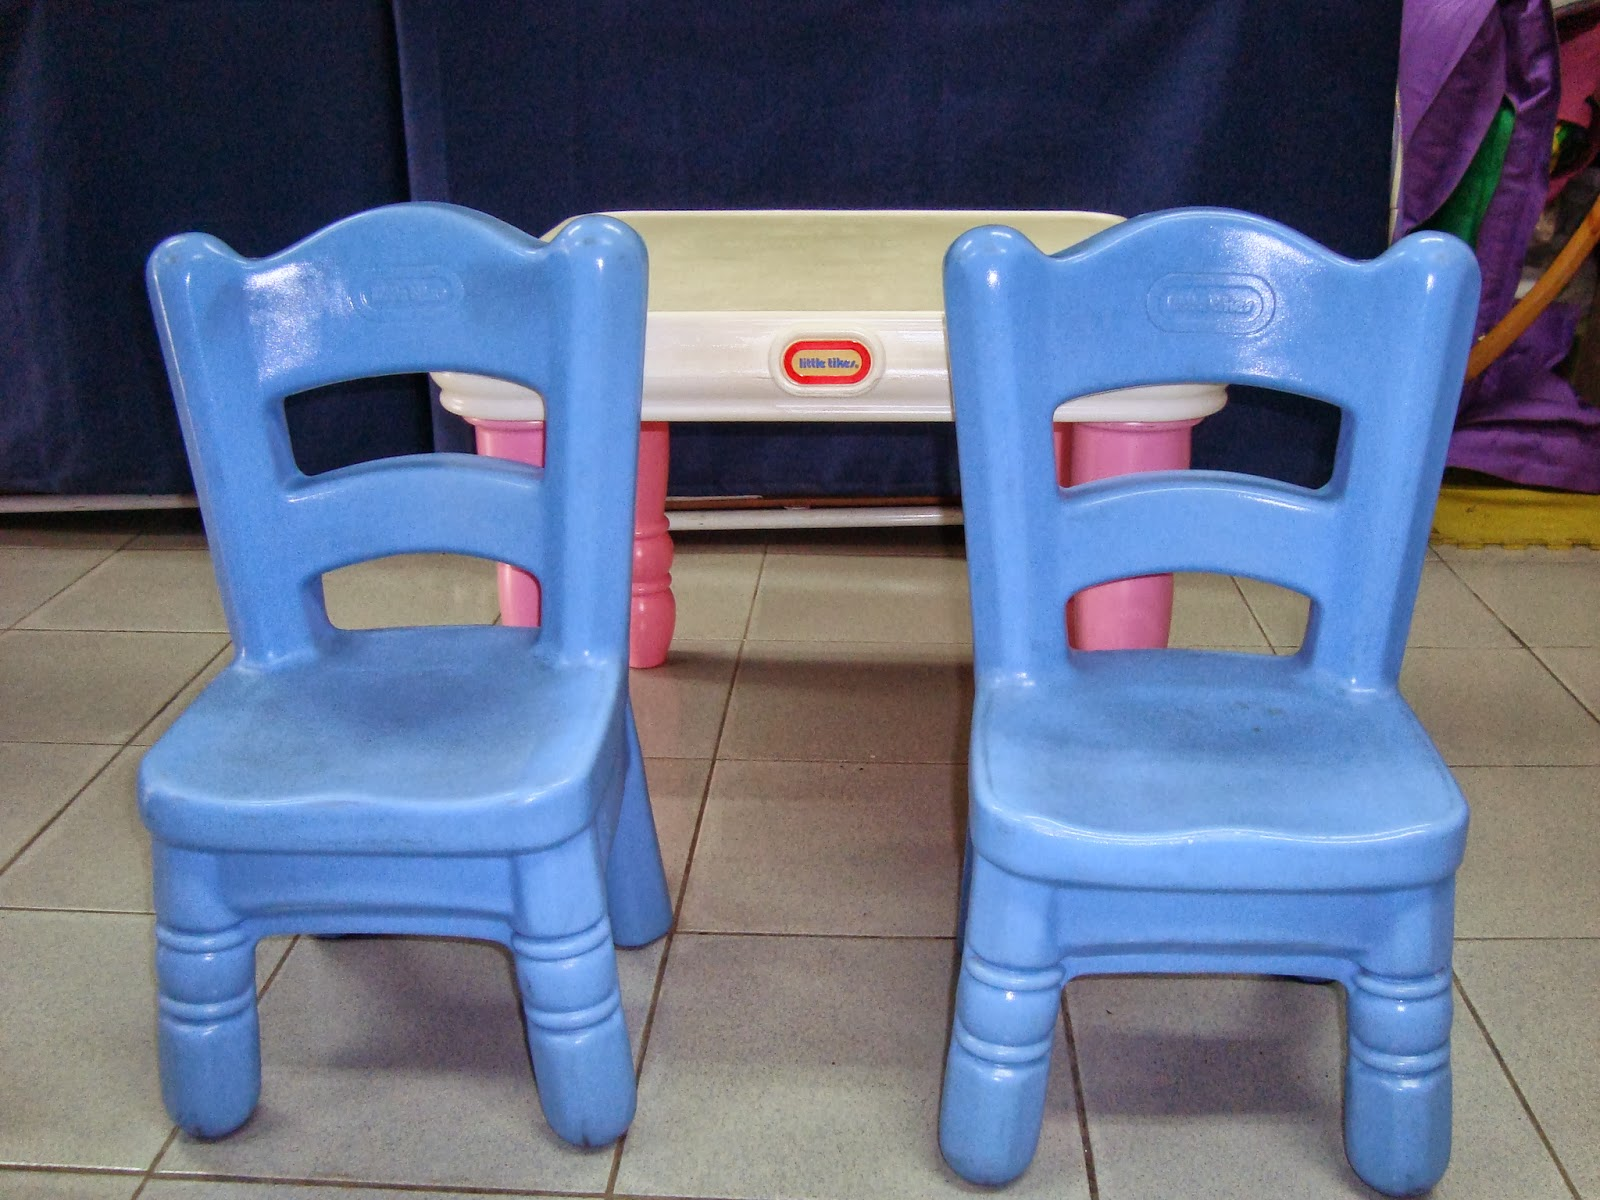 LITTLE TIKES VICTORIAN TENDER HEART TABLE CHAIRS EUC 2 VICTORIAN heart blue chairs. VICTORIAN Pink and white Table Excellent used clean condition & Preloved ToysWorld TheTotToys: Little Tikes Victorian Tender Heart ...